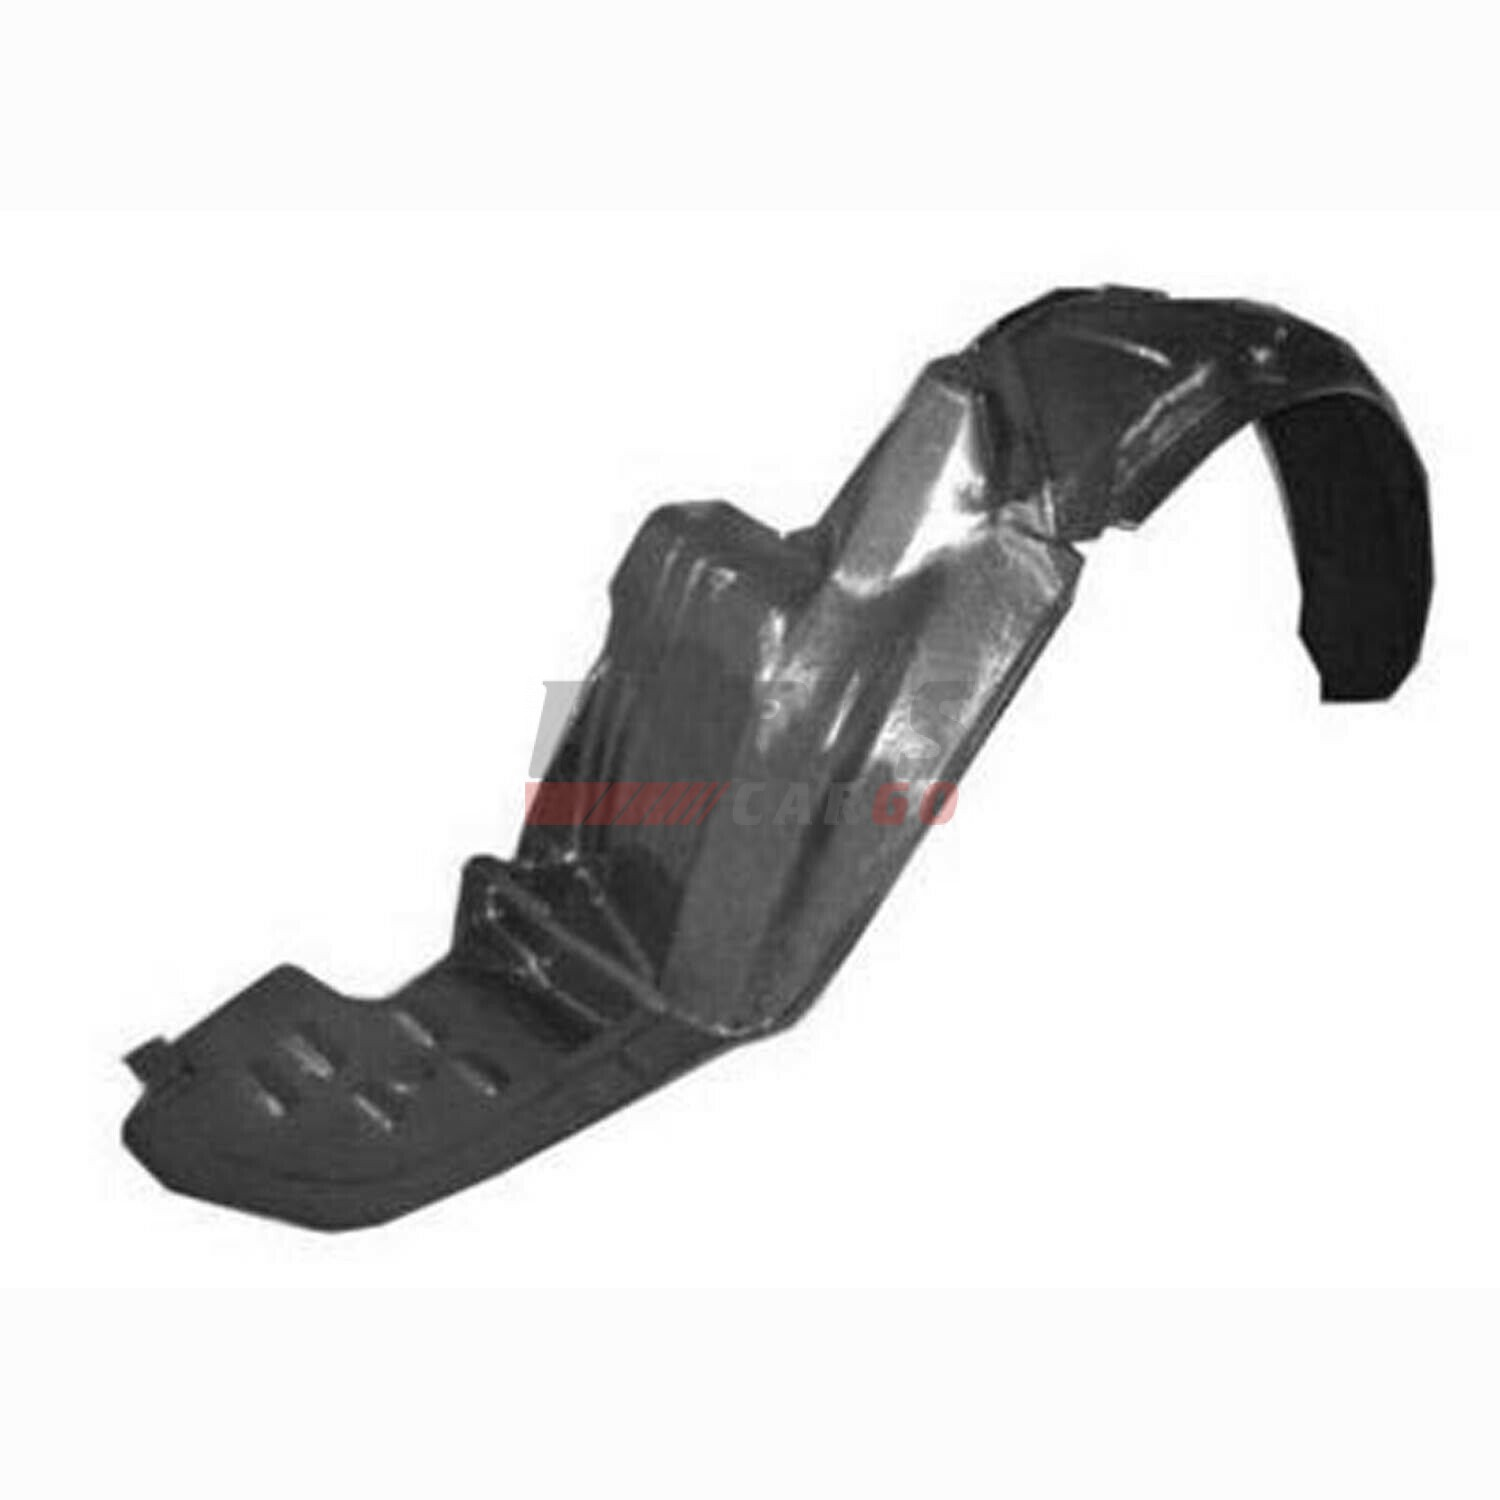 NEW INNER FENDER RIGHT SIDE FITS 2002-2003 ACURA TL SEDAN